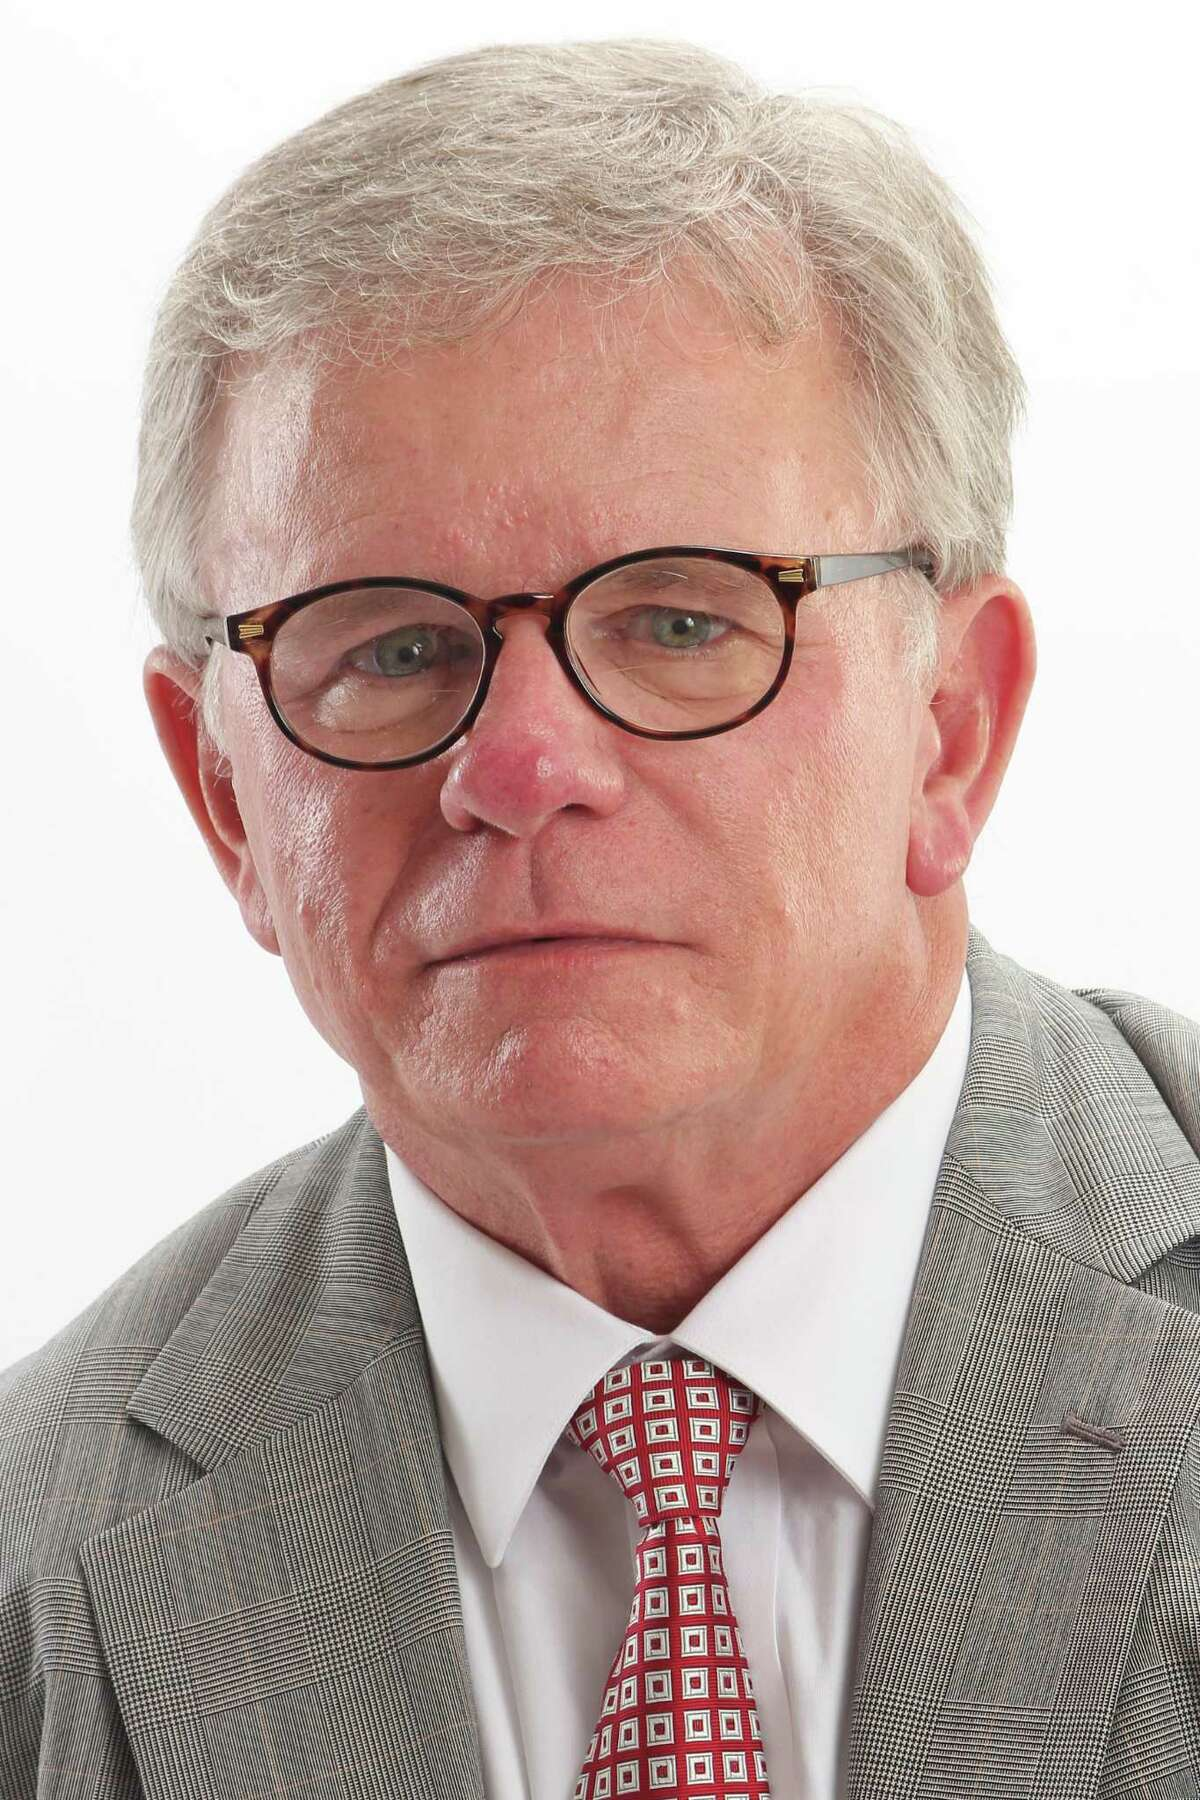 Walter Cooke, a nearly three-decade resident of The Woodlands and a local attorney, lost his 2019 bid for a seat on the Board of Directors. In the 2020 election, he has worked as both the vice president and treasurer for the TownshipFuture PAC while also working as the campaign treasurer for Jimmie Dotson, who is seeking the Position 2 seat.